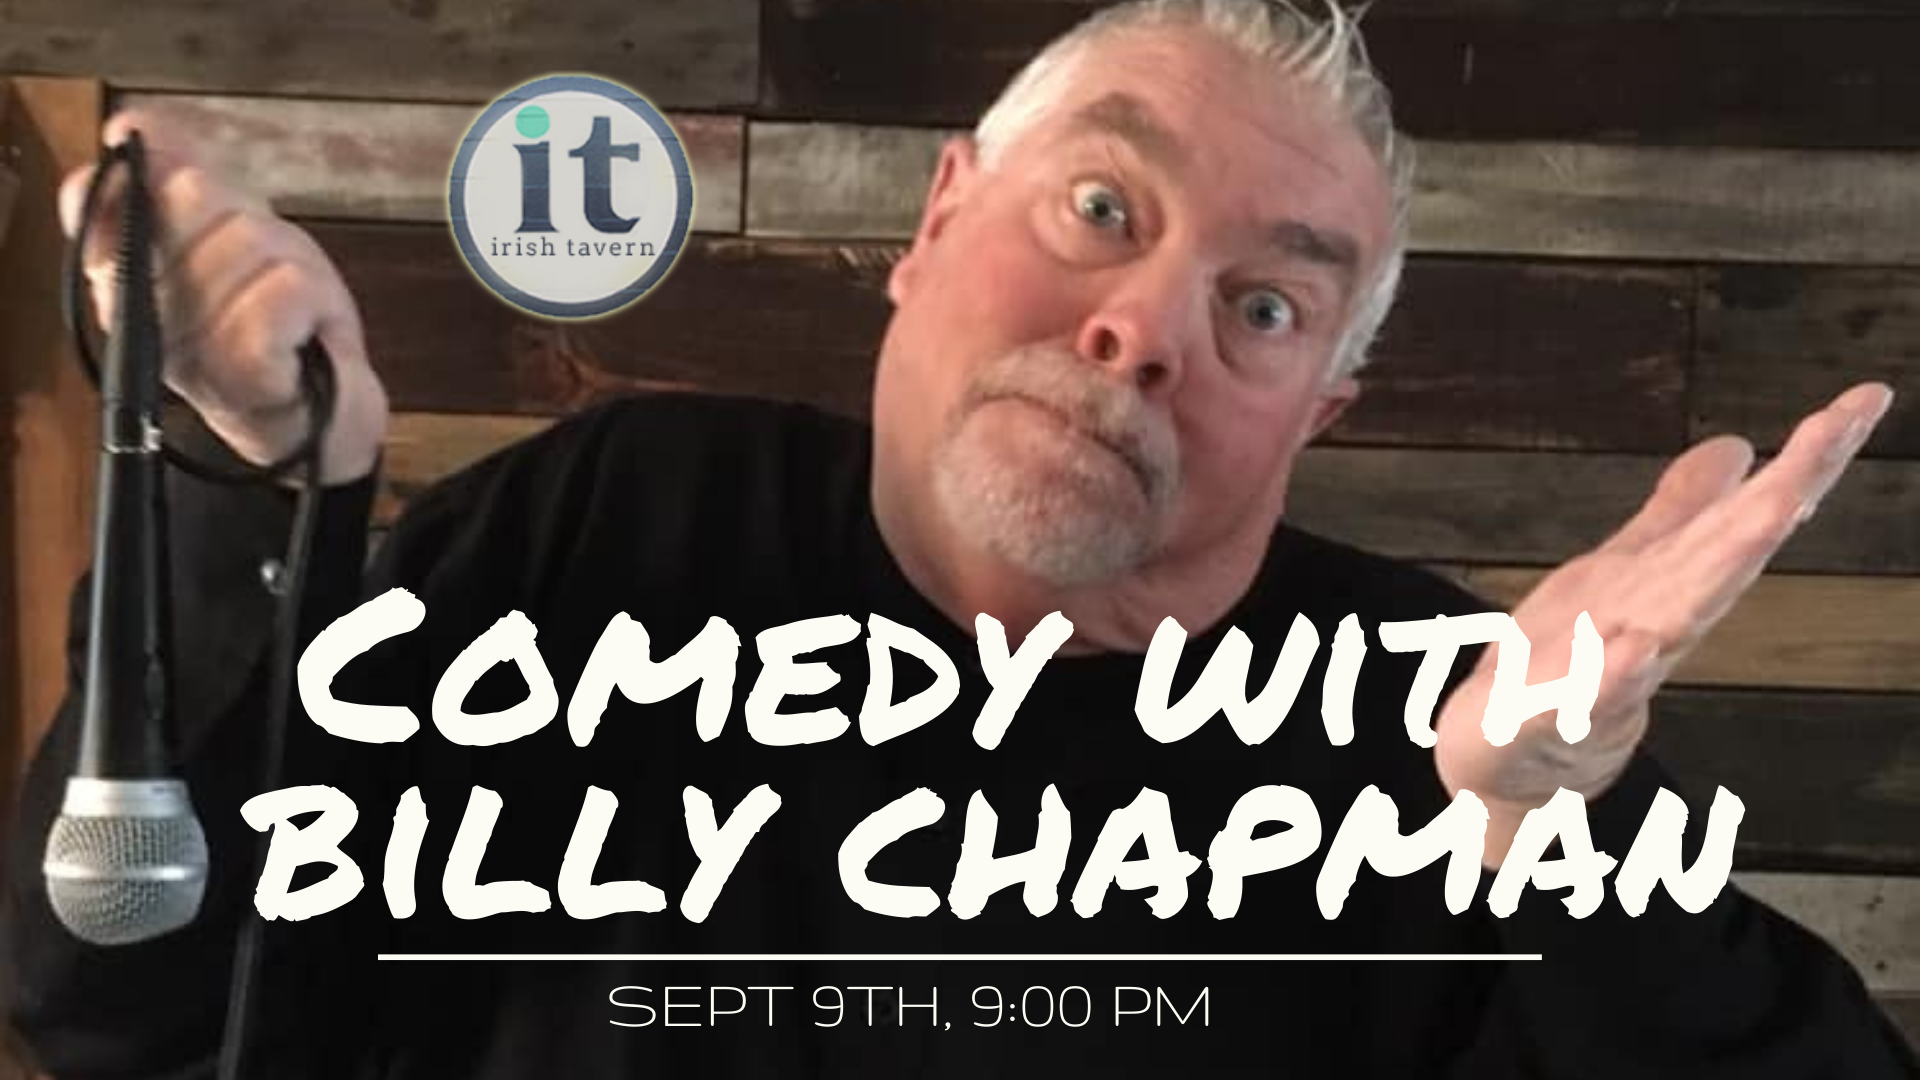 Comedy Night 9/9 at 9pm